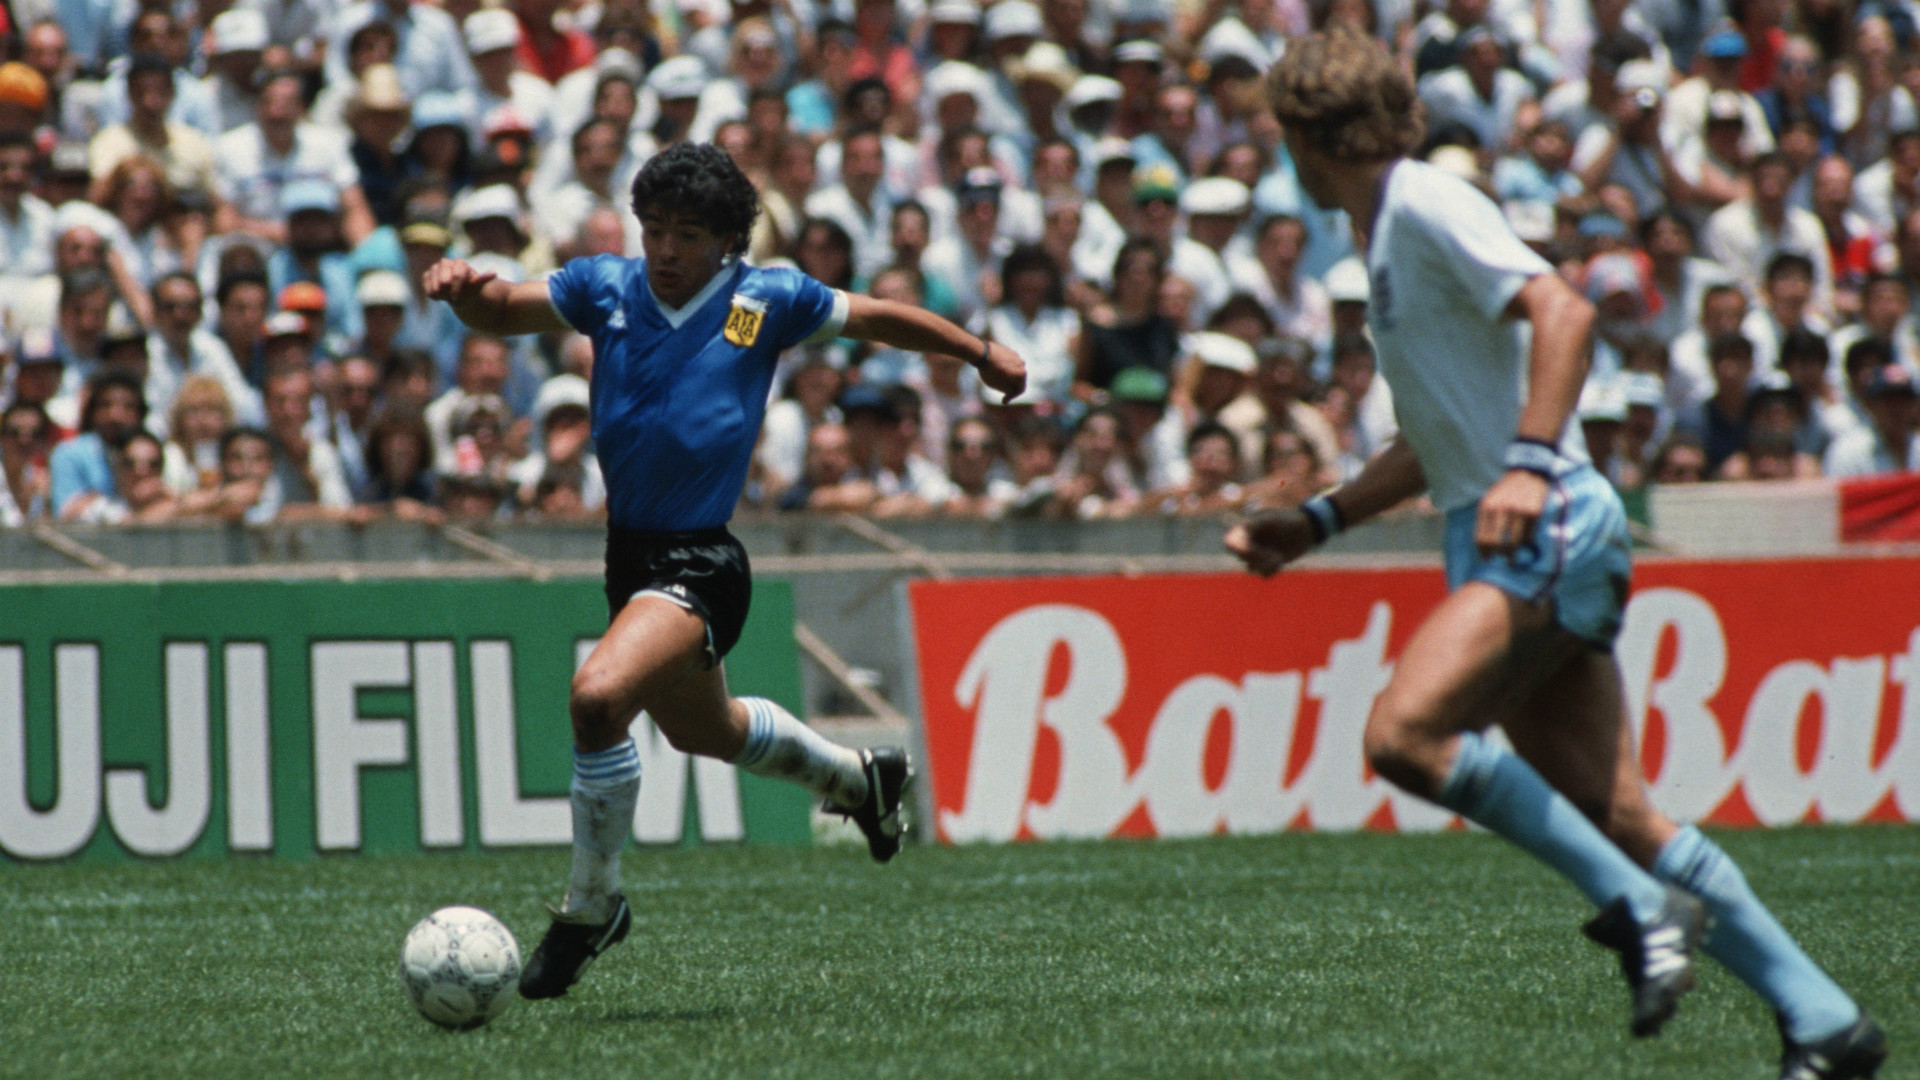 Diego Maradona The Hand Of God The Most Infamous Goal In World